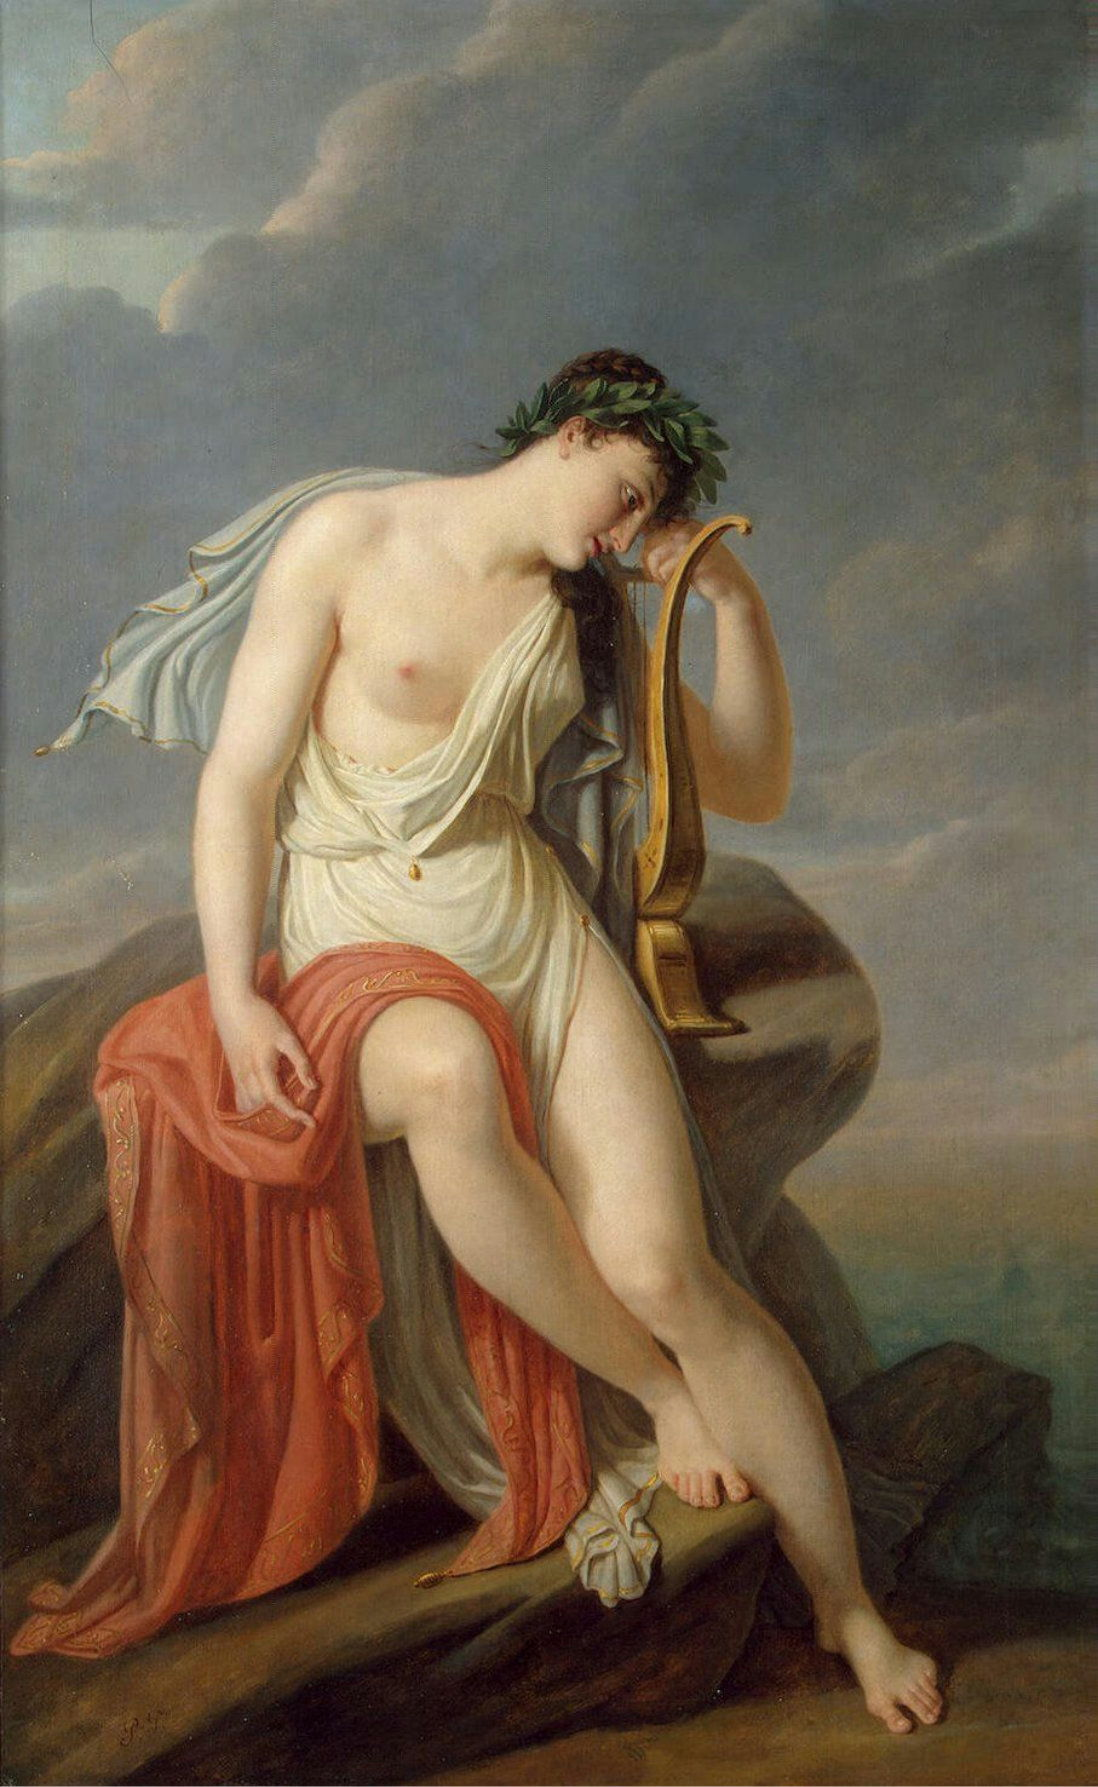 """representation of sappho Of that extensive output, we possess precisely one complete poem generally referred to as """"fragment 1"""" in the standard editions of sappho's works, this seven-stanza lyric, composed in sapphic strophes, is a self-deprecatingly humorous request for assistance by the lovelorn sappho to aphrodite, goddess of love."""